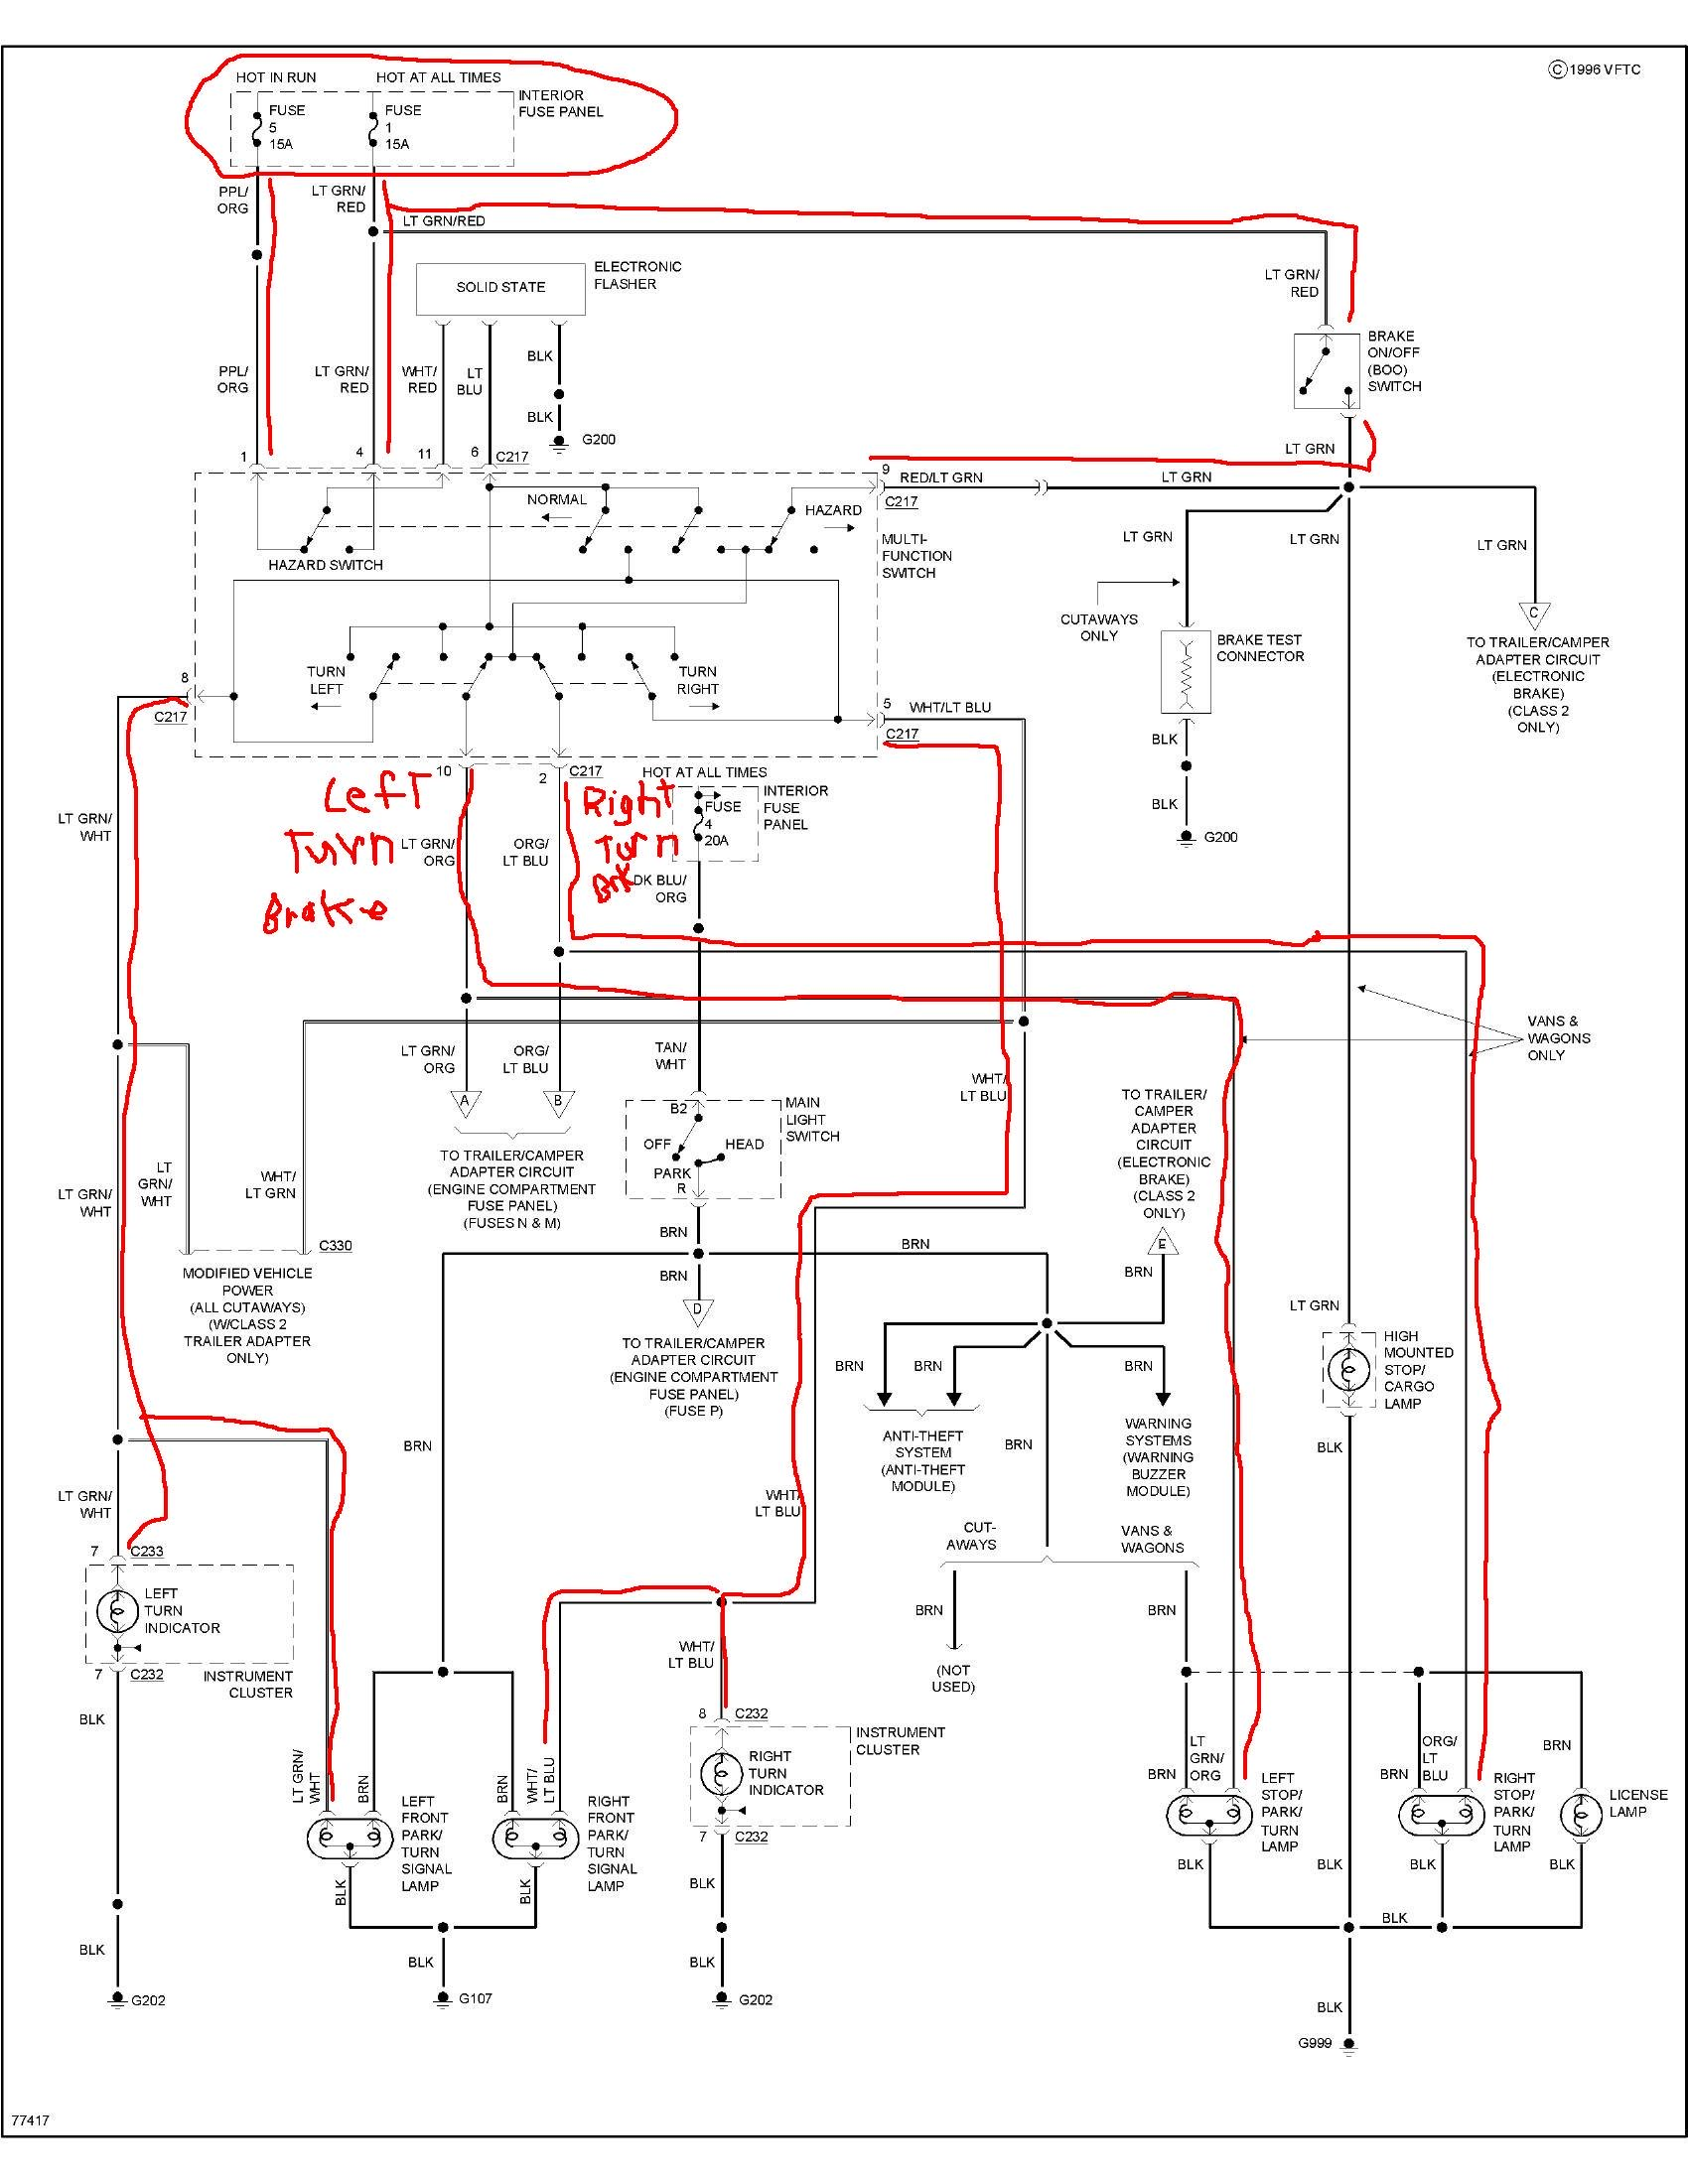 ford e 350 dually tail light diagram - wiring diagram parched-directory -  parched-directory.campusmelfi.it  campus melfi